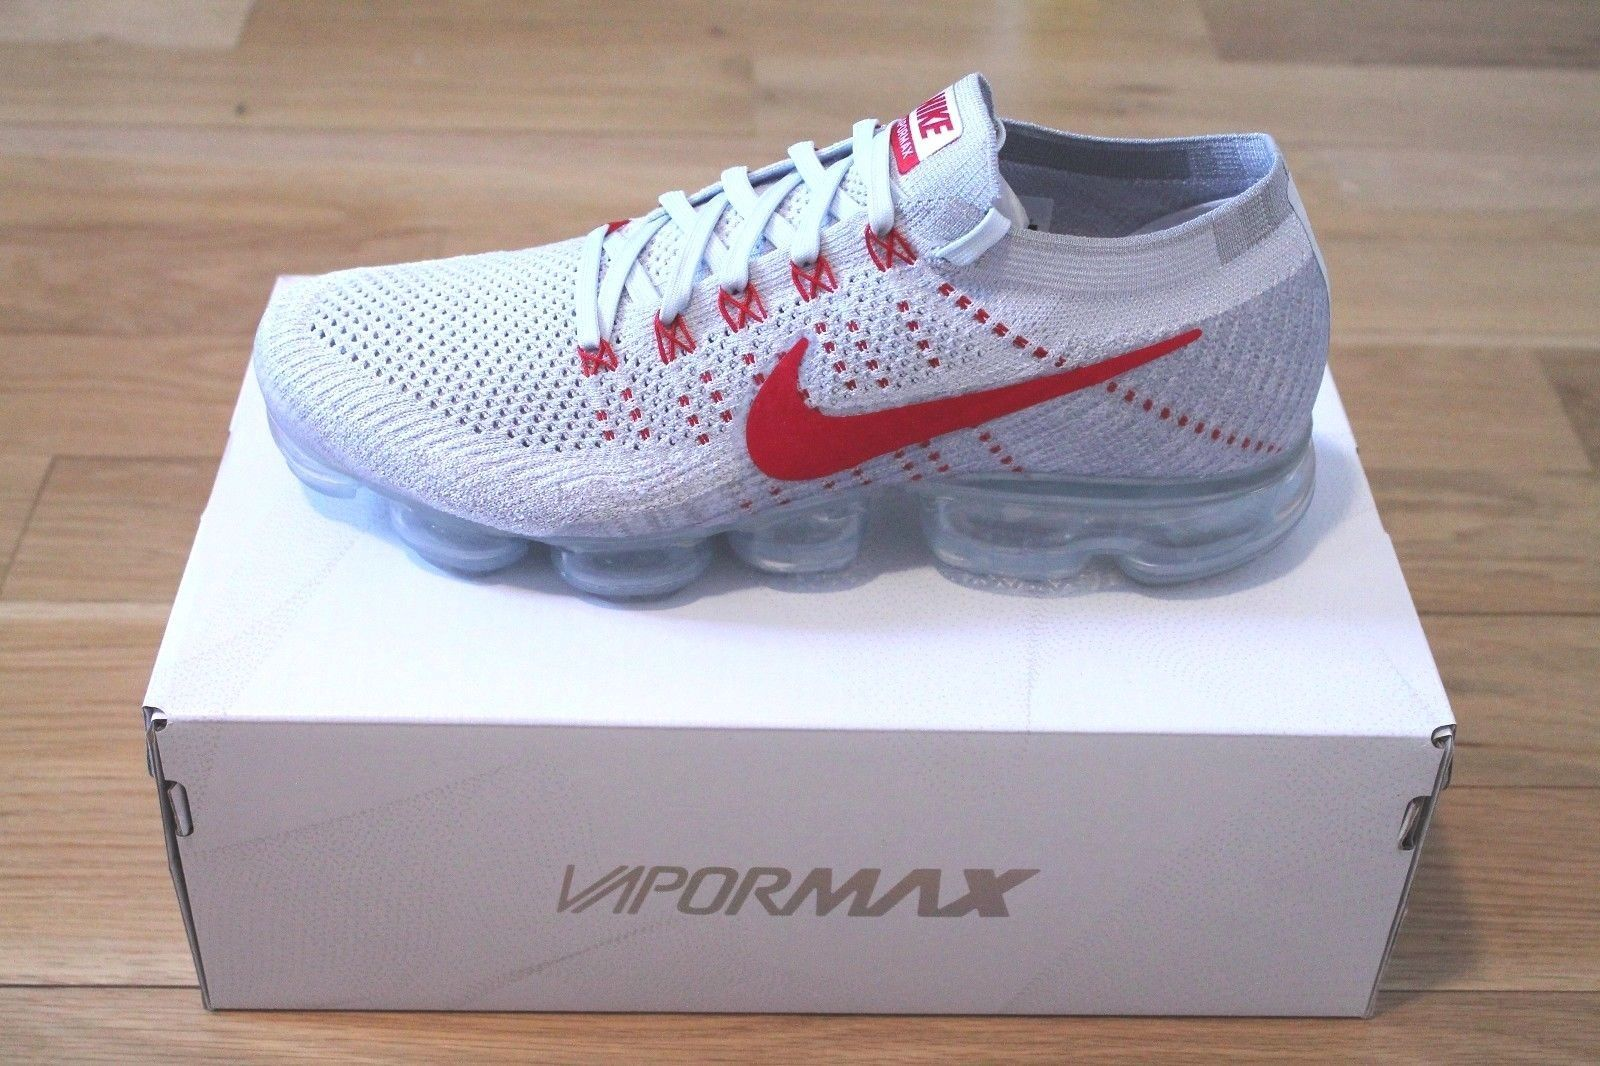 ea2e3b45eba Nike Air VaporMax Flyknit  Pure Platinum University Red  - EU Kicks   Sneaker Magazine